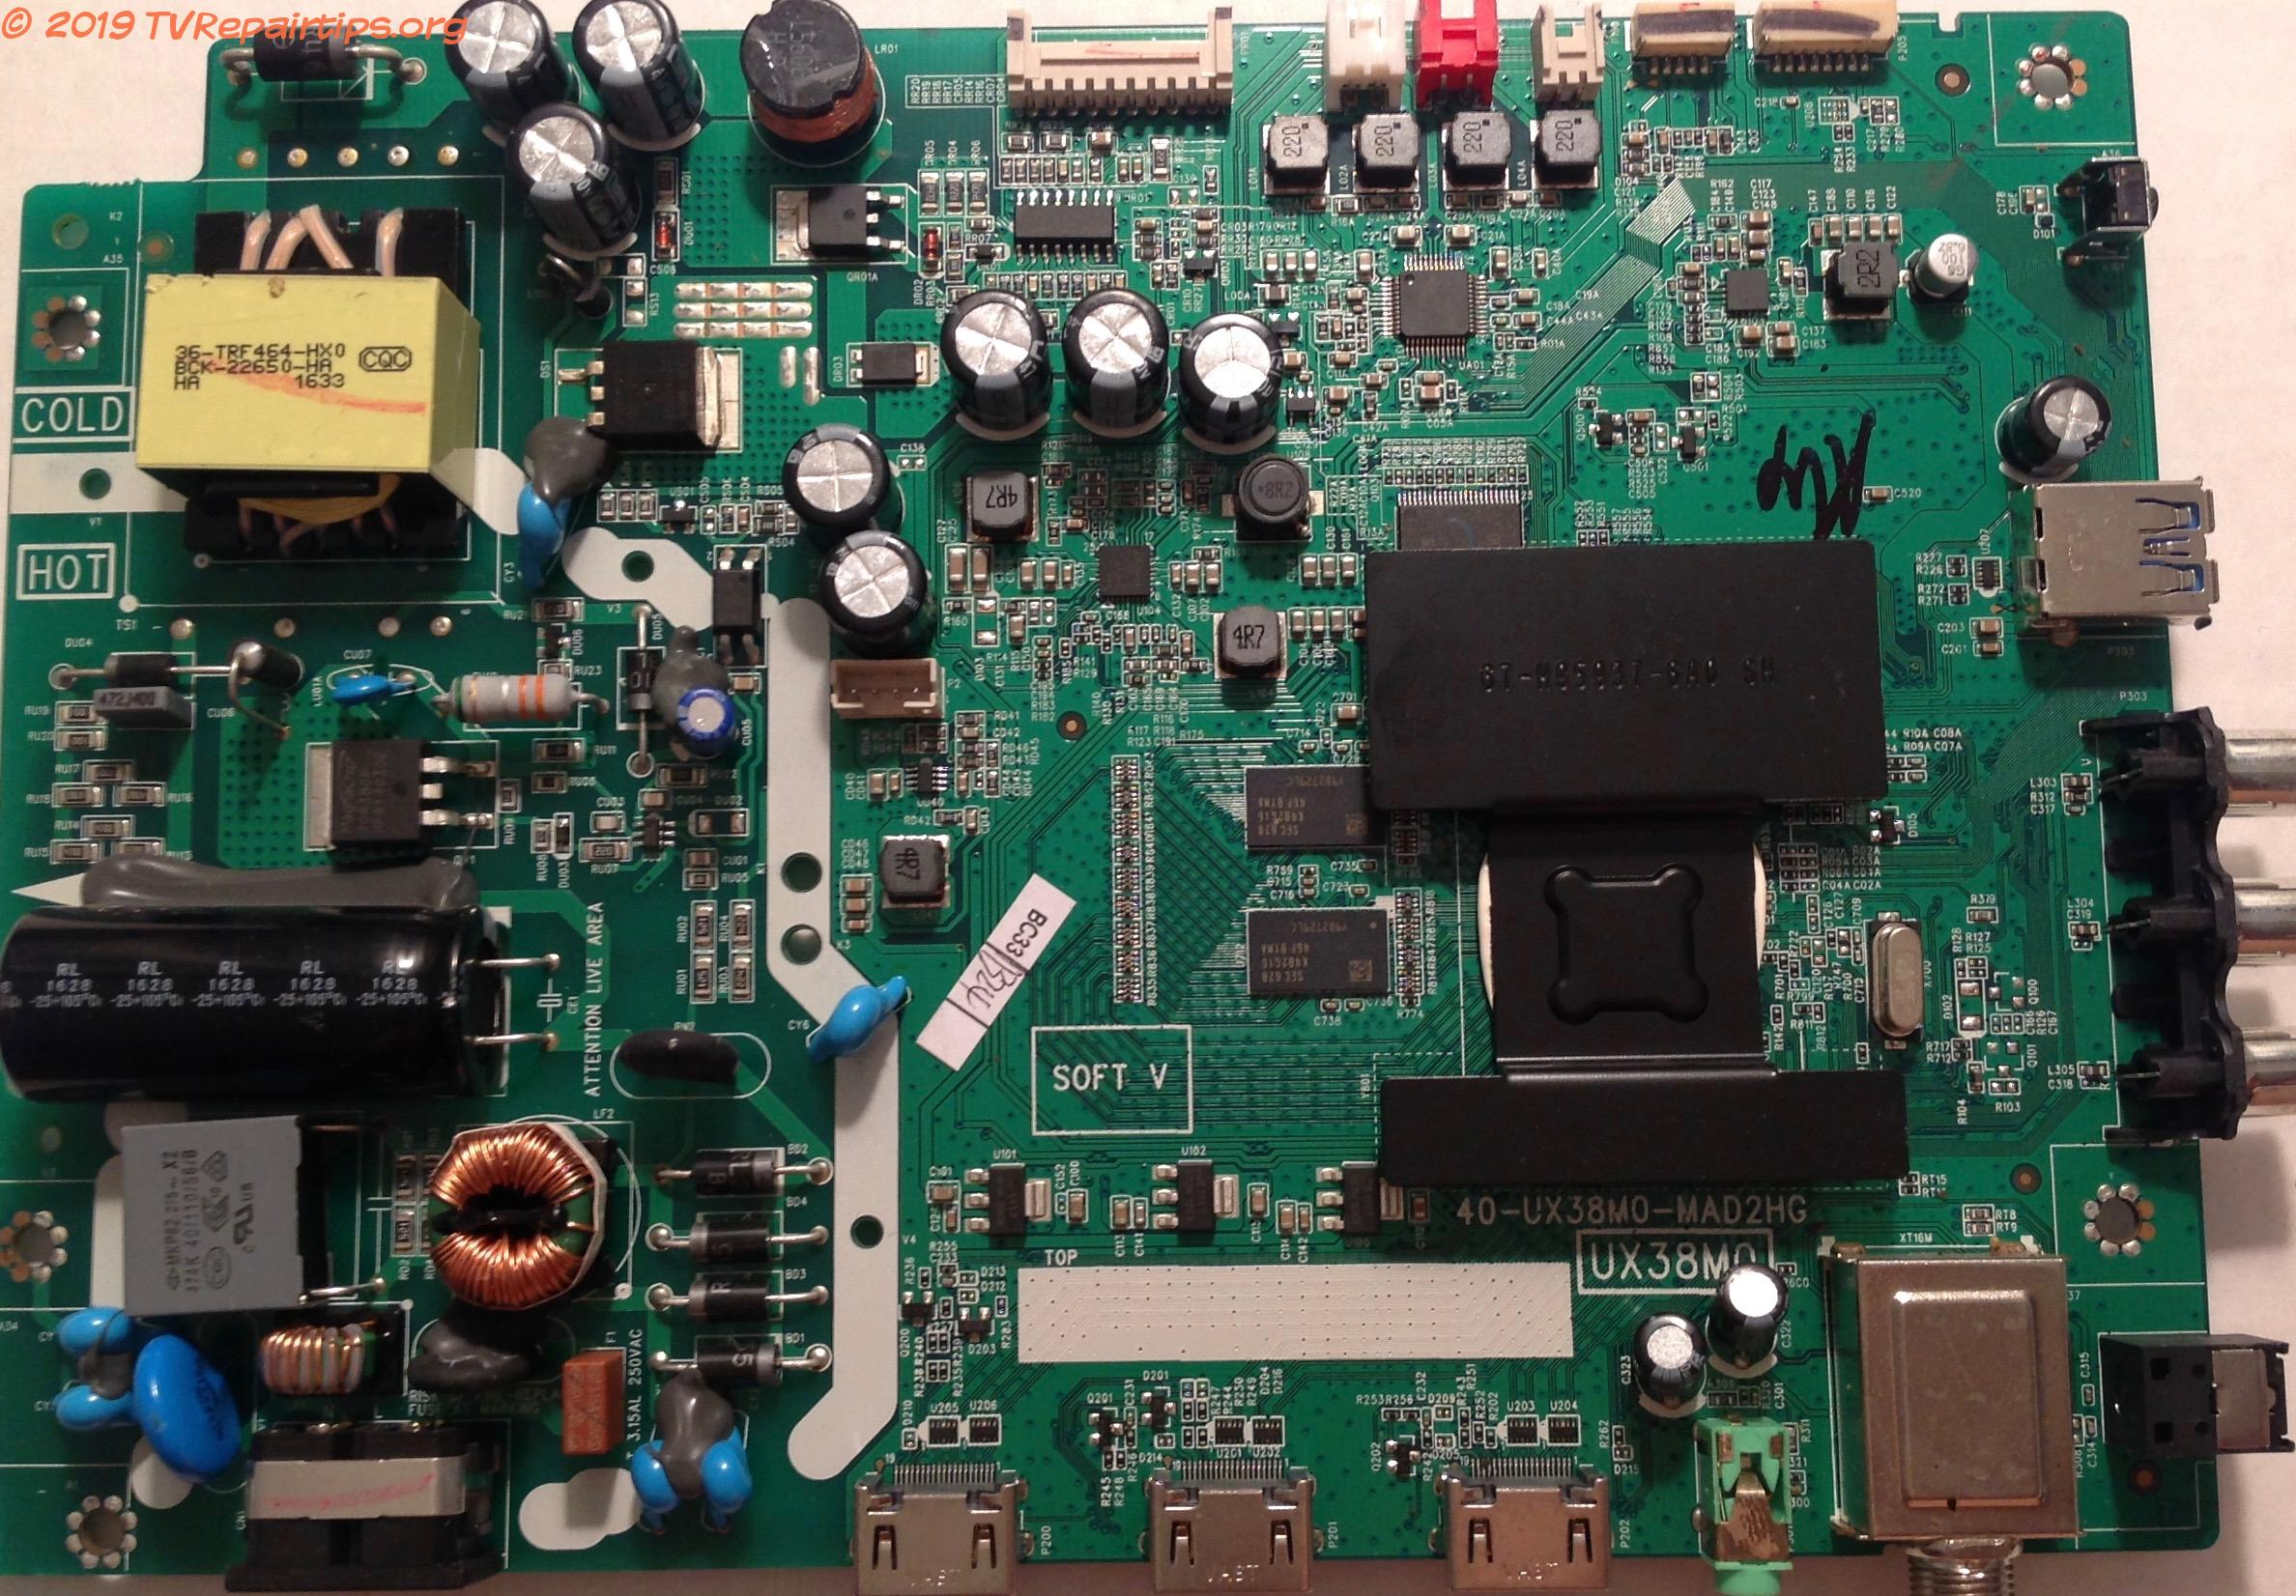 TCL Main Board / Power Supply for 32S3750 (32S3750TQAA Version)